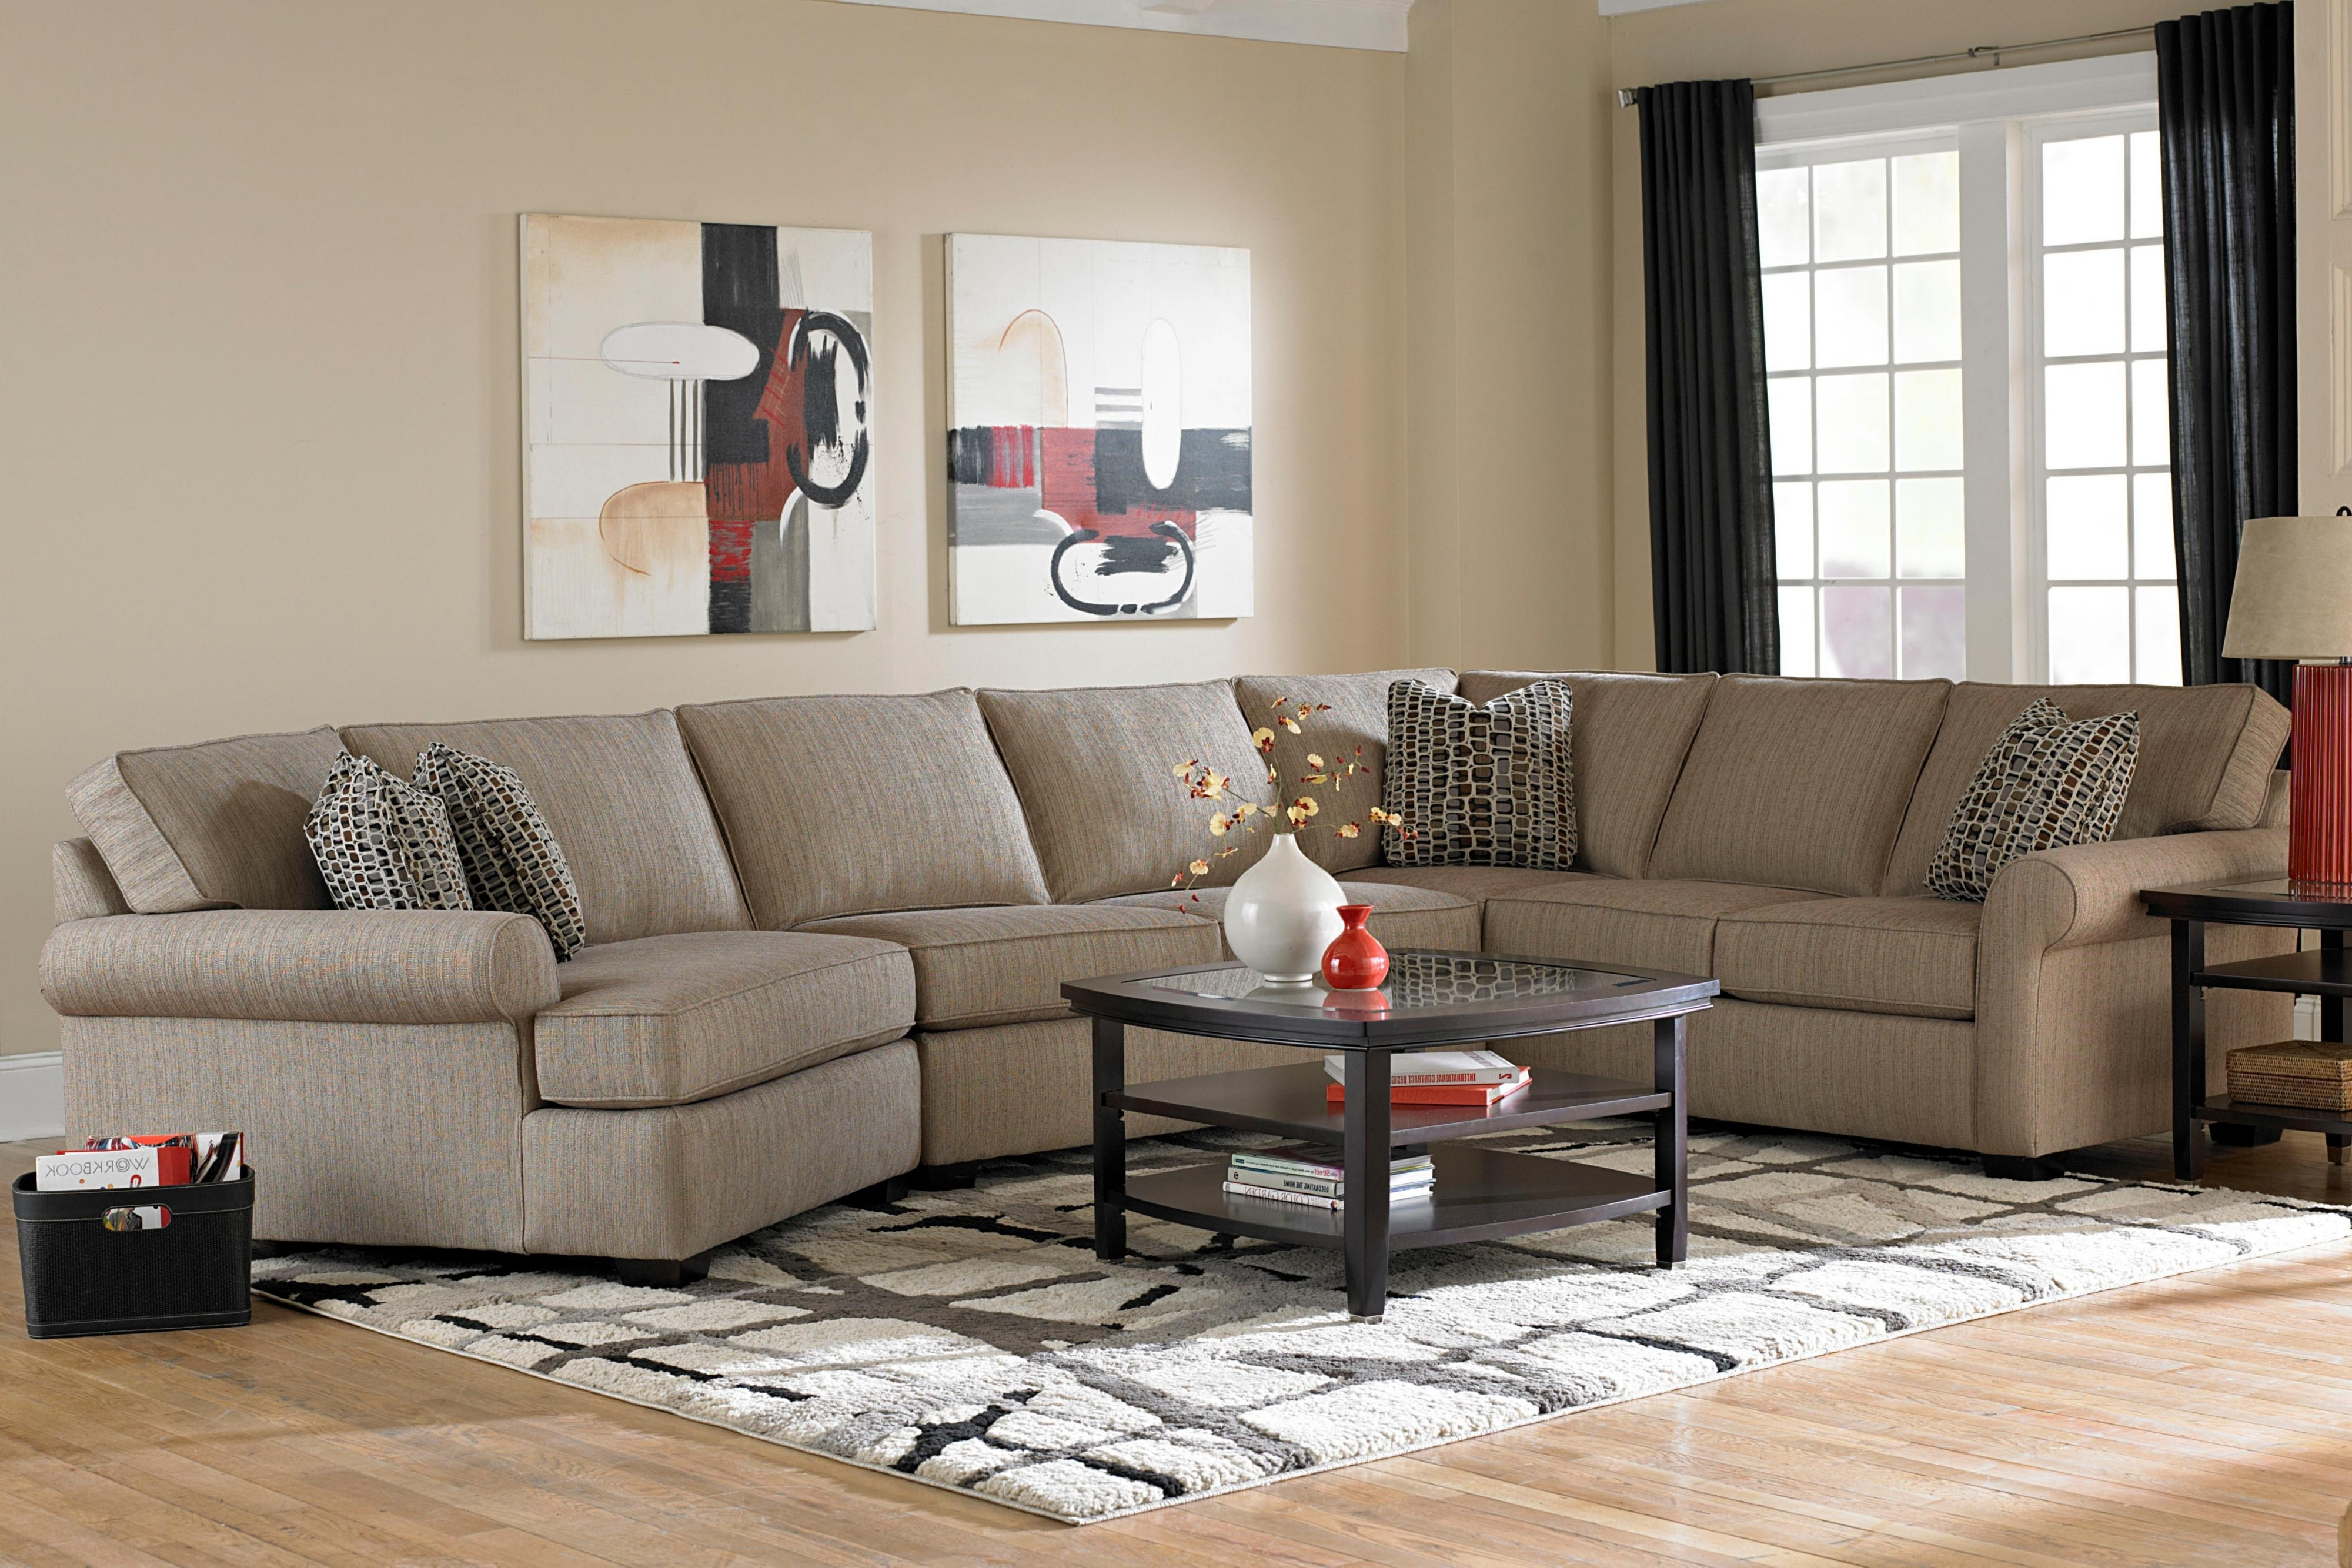 Sectional Sofas In North Carolina Throughout Widely Used Broyhill Furniture Ethan Transitional Sectional Sofa With Right (View 3 of 15)